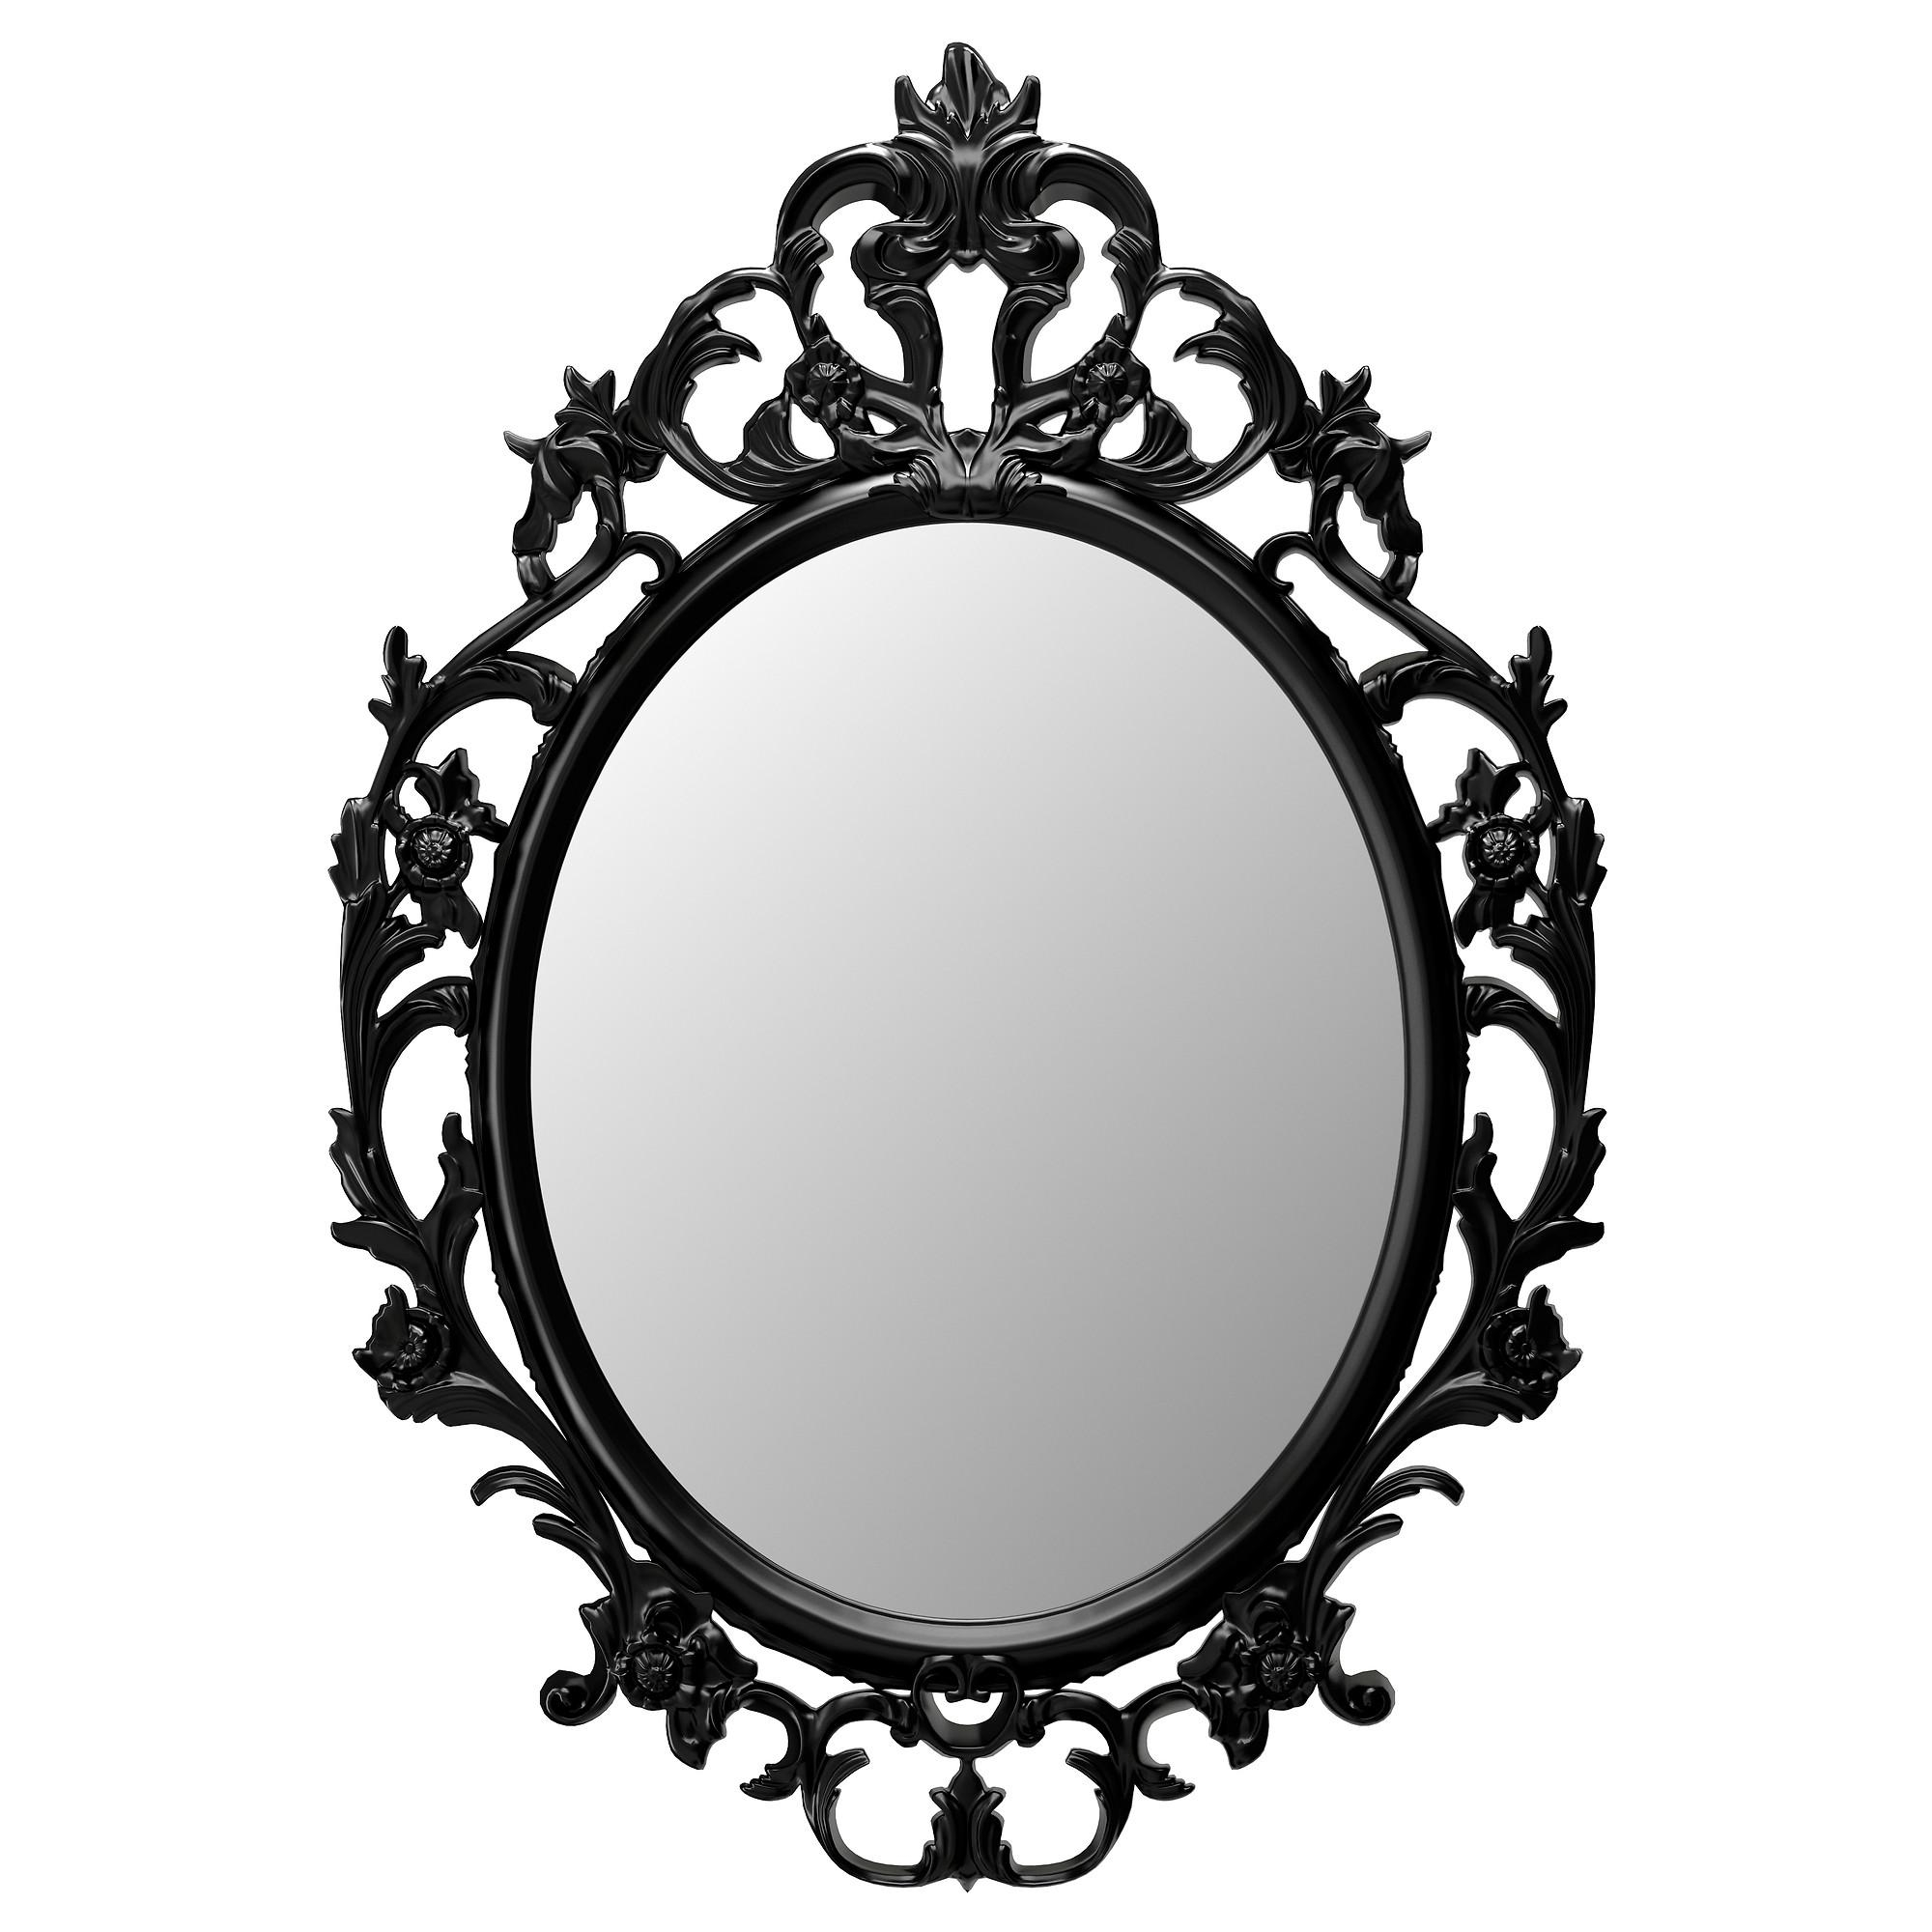 Ung Drill Mirror – Ikea Inside Baroque Black Mirror (Image 17 of 20)